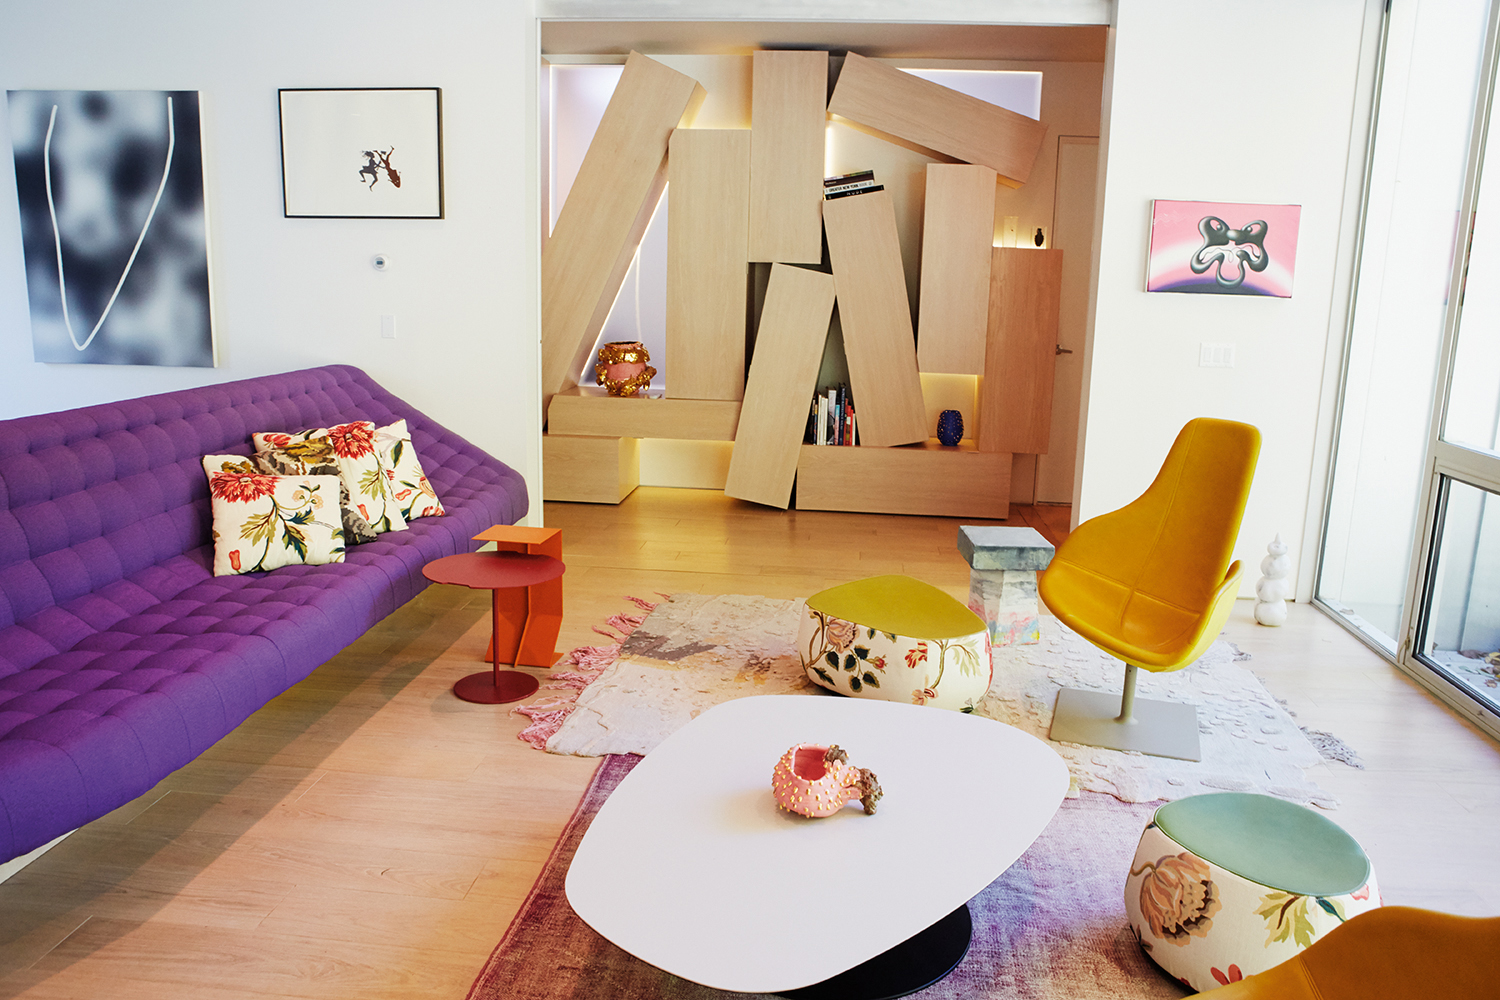 Artist on the living room wall: Jeff Elrod, Kara Walker and Kenny Scharf. Furnished with pieces by Anton Alvarez, Kueng Caputo and Patricia Urquiola. Jumble of boxes is a coat closet designed by their interior decorator  Giancarlo Valle .